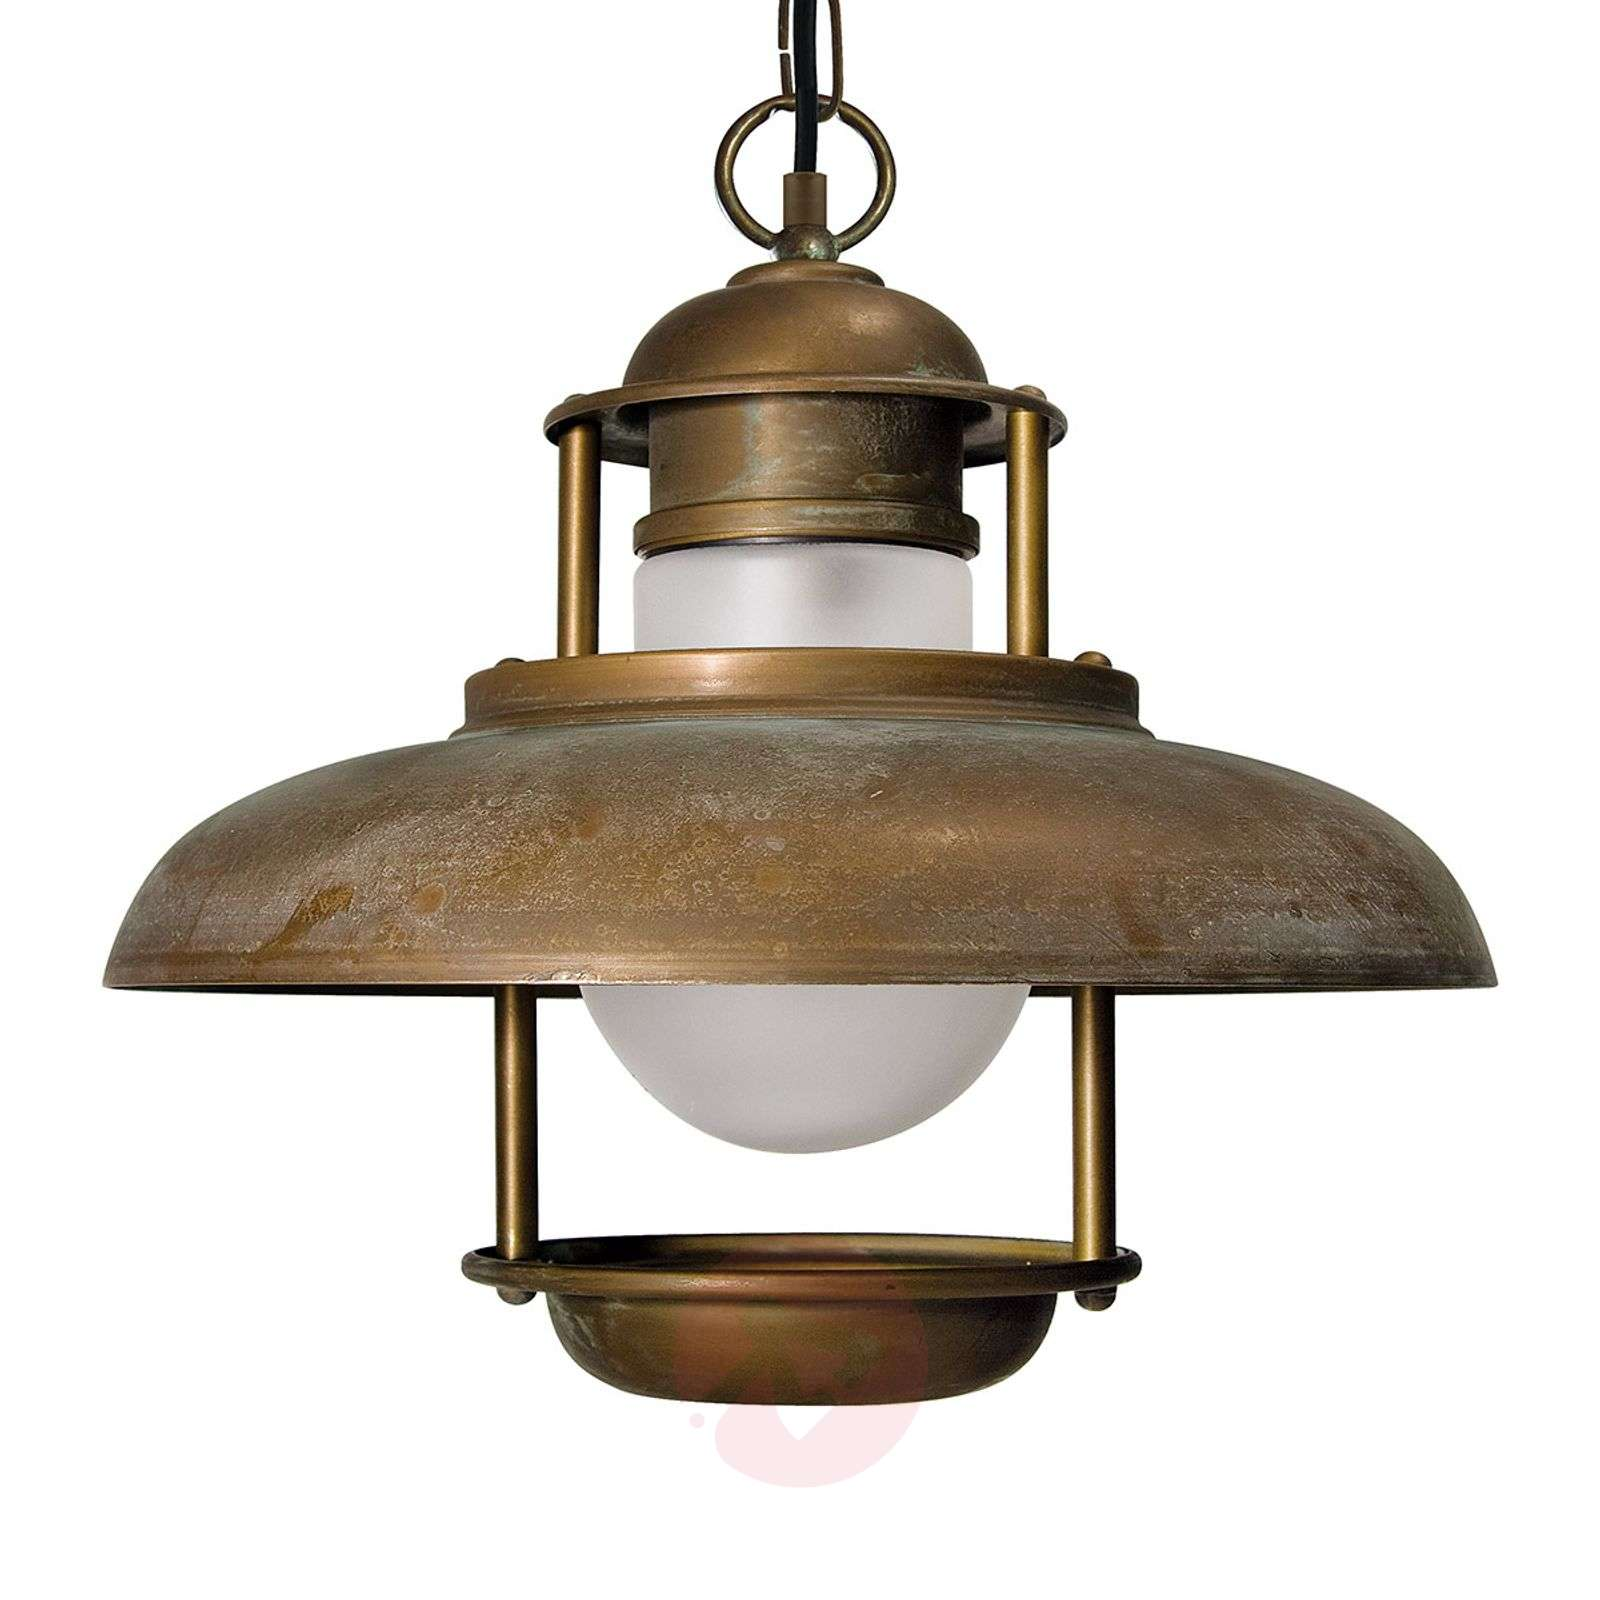 Seawater-resistant outdoor hanging light Salina-6515223-01